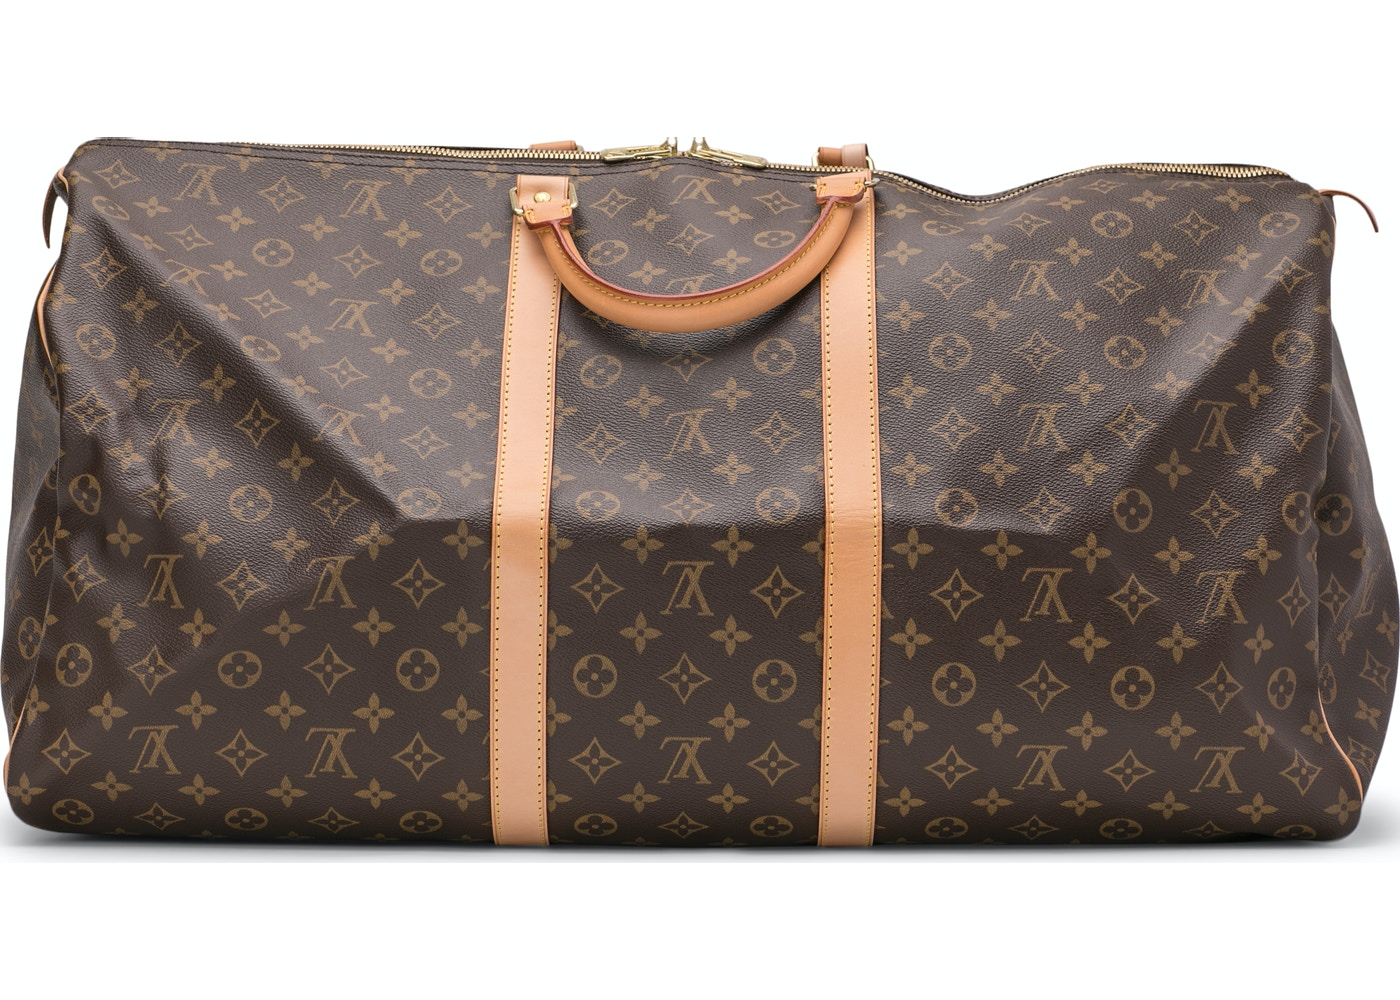 f2583cb91eb6 Louis Vuitton Keepall (With Accessories) Monogram 60 Brown